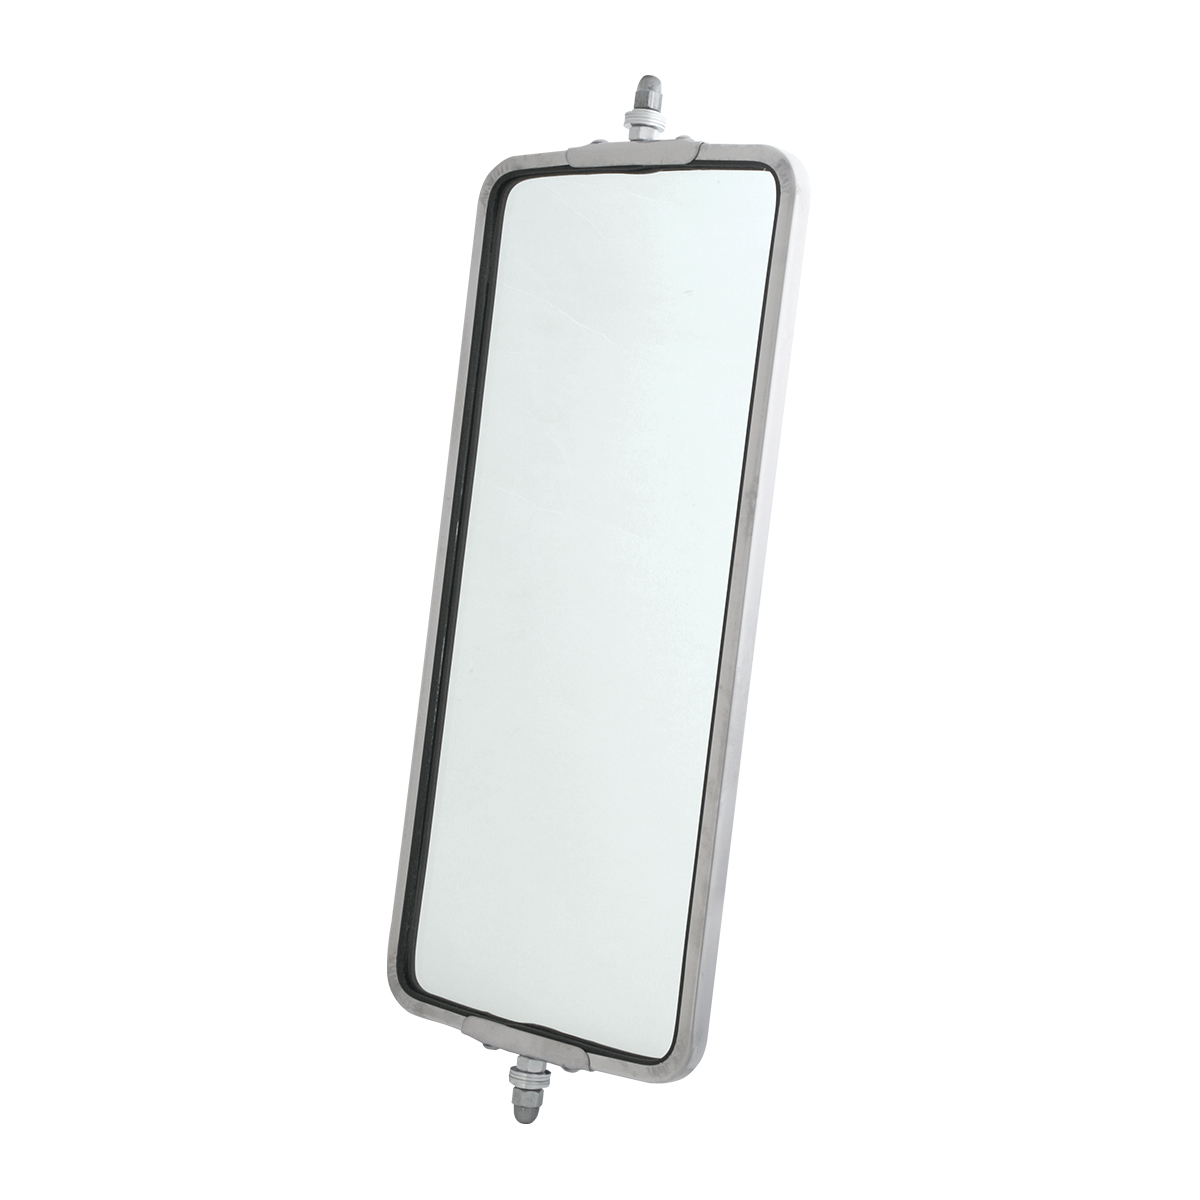 33312 OEM Style Stainless Steel West Coast Mirror with Lighting Function